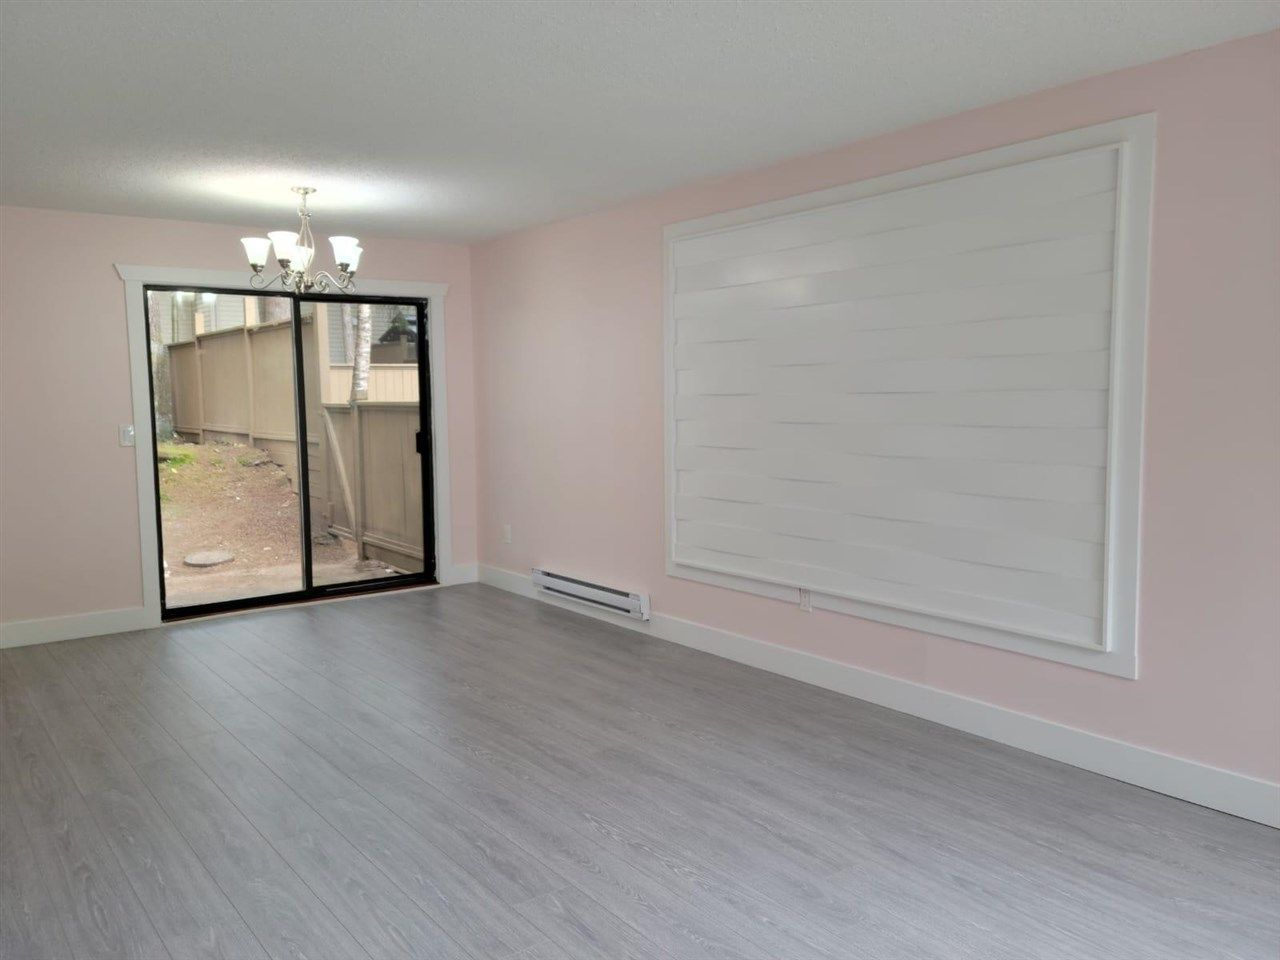 """Main Photo: 23 32310 MOUAT Drive in Abbotsford: Abbotsford West Townhouse for sale in """"Mouat Gardens"""" : MLS®# R2577488"""